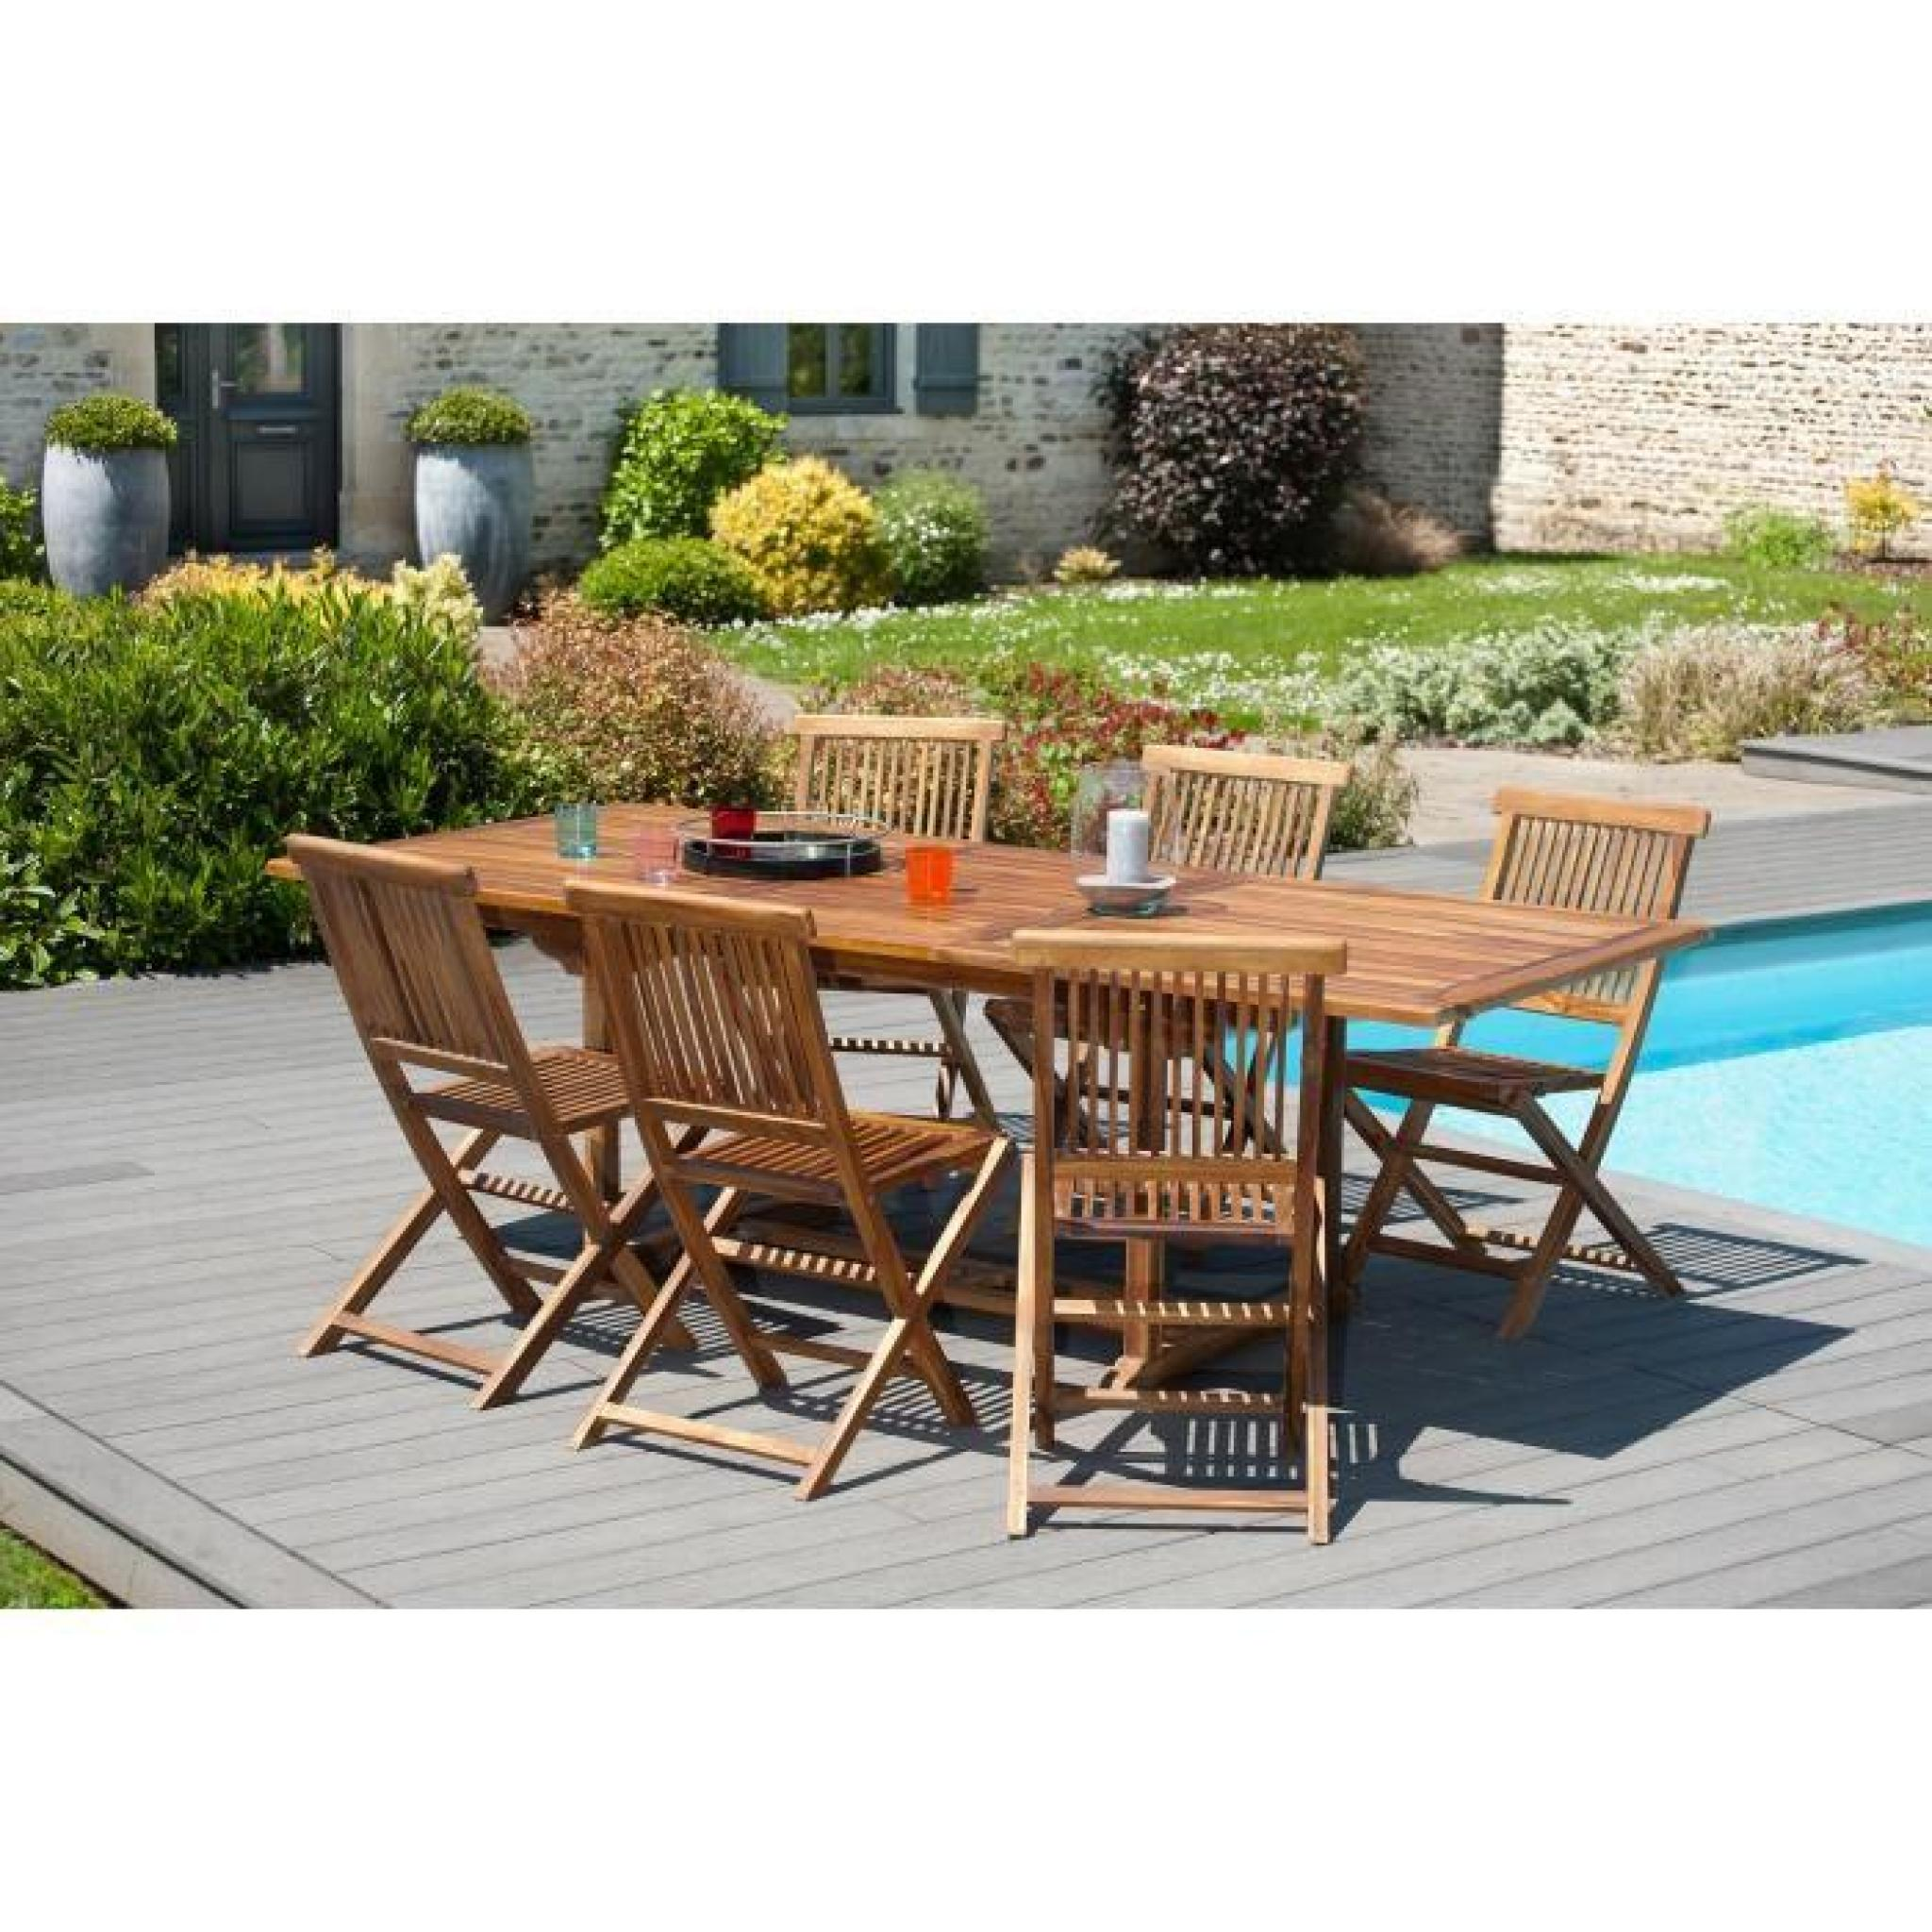 HAVANA Ensemble de jardin en bois teck huilé 10 places - Table extensible -  Marron